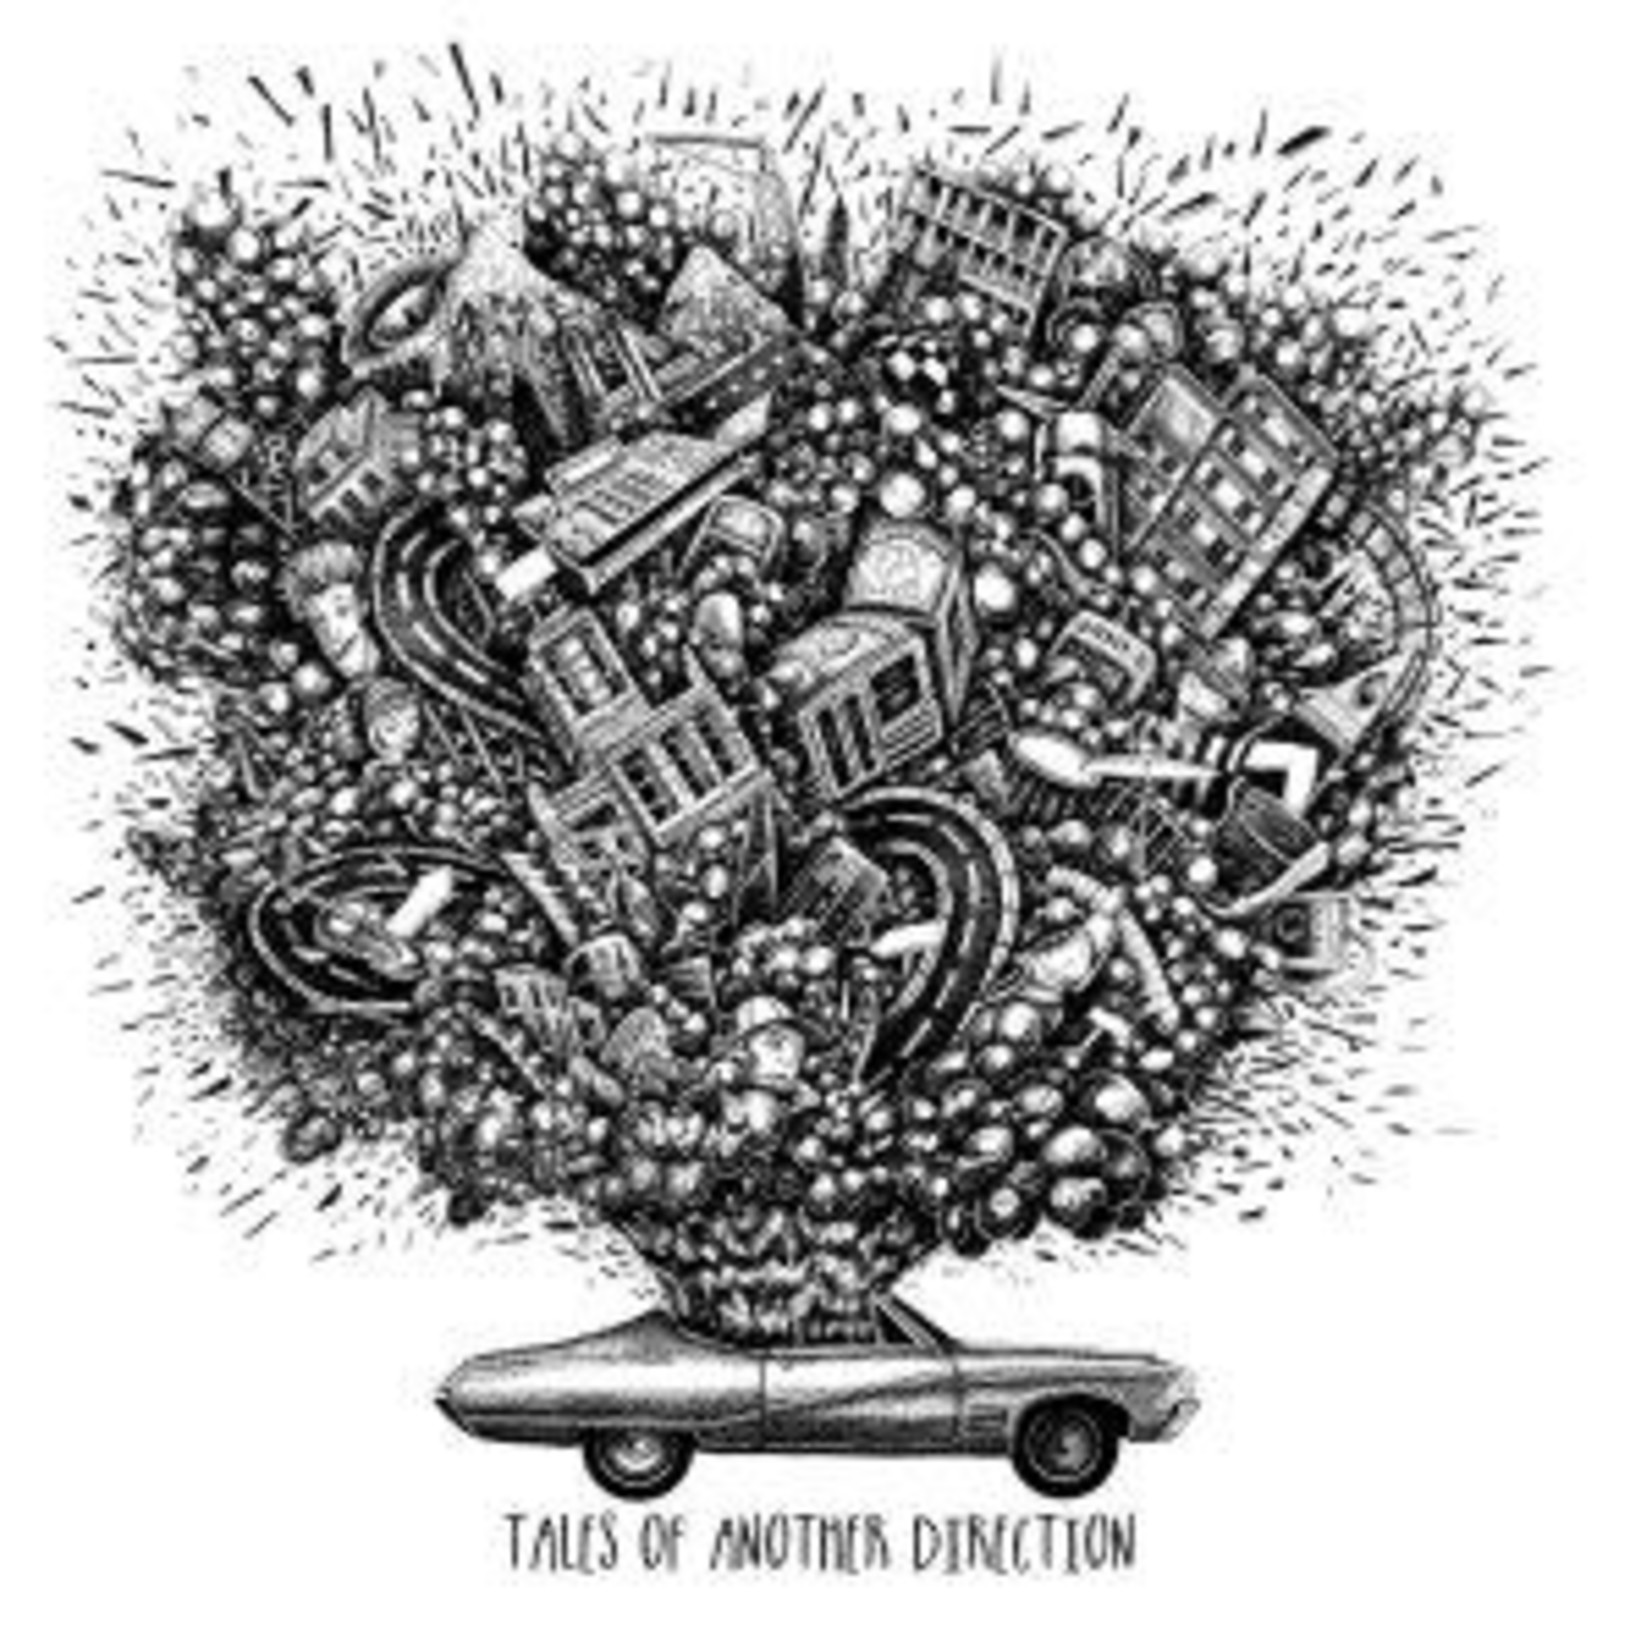 V/A - Tales of Another Direction   (VINYL)